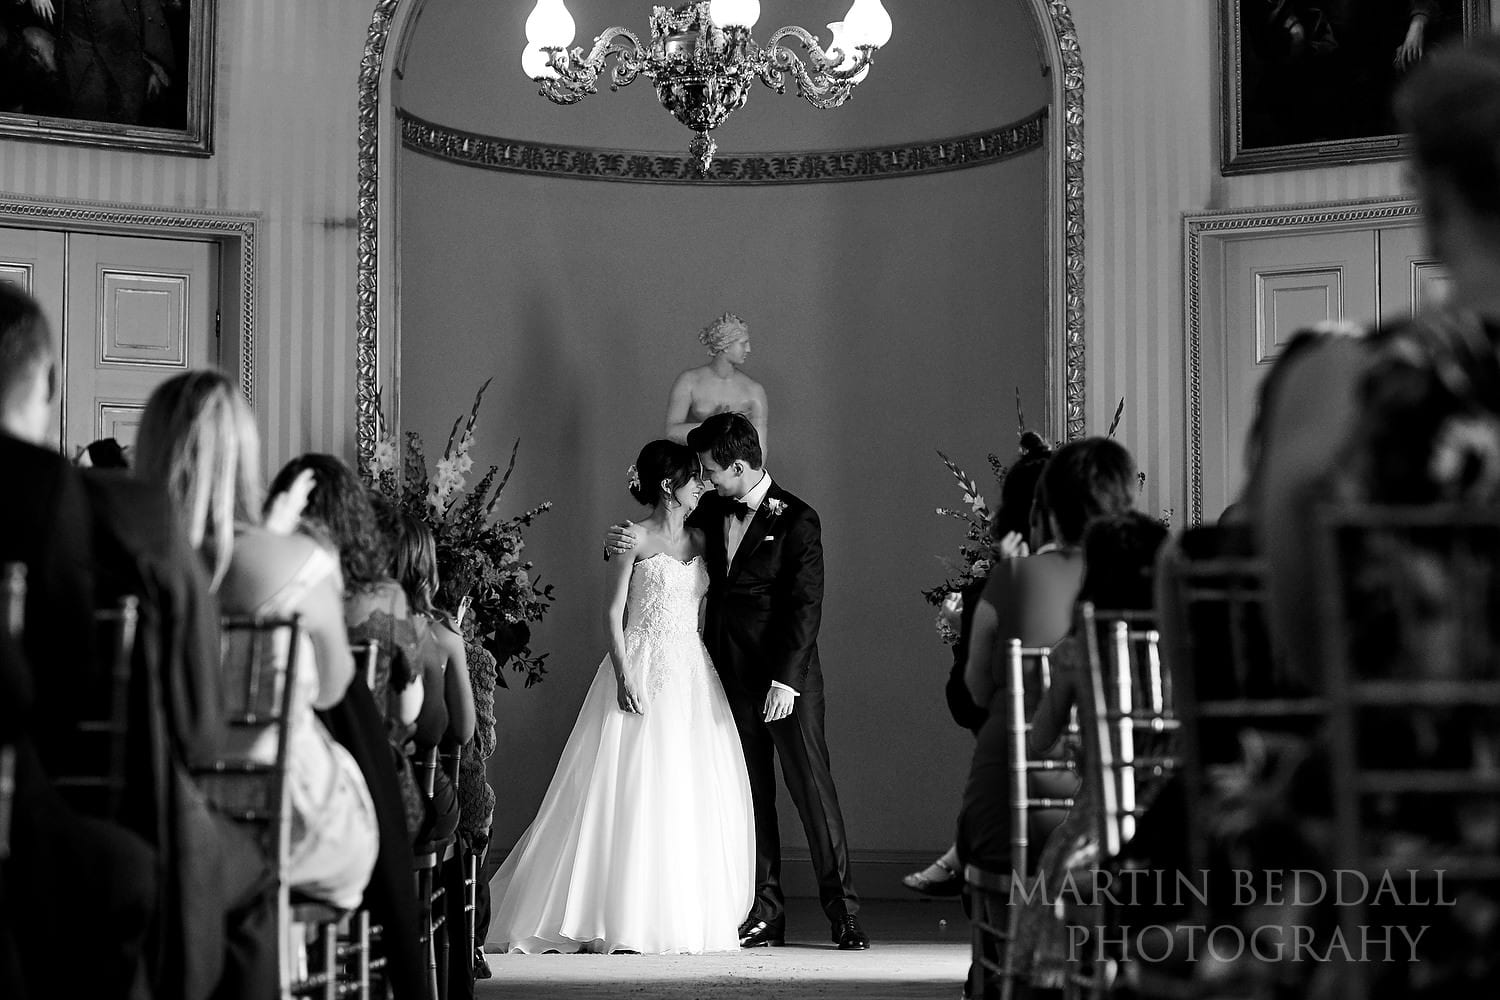 Goodwood House wedding ceremony ends